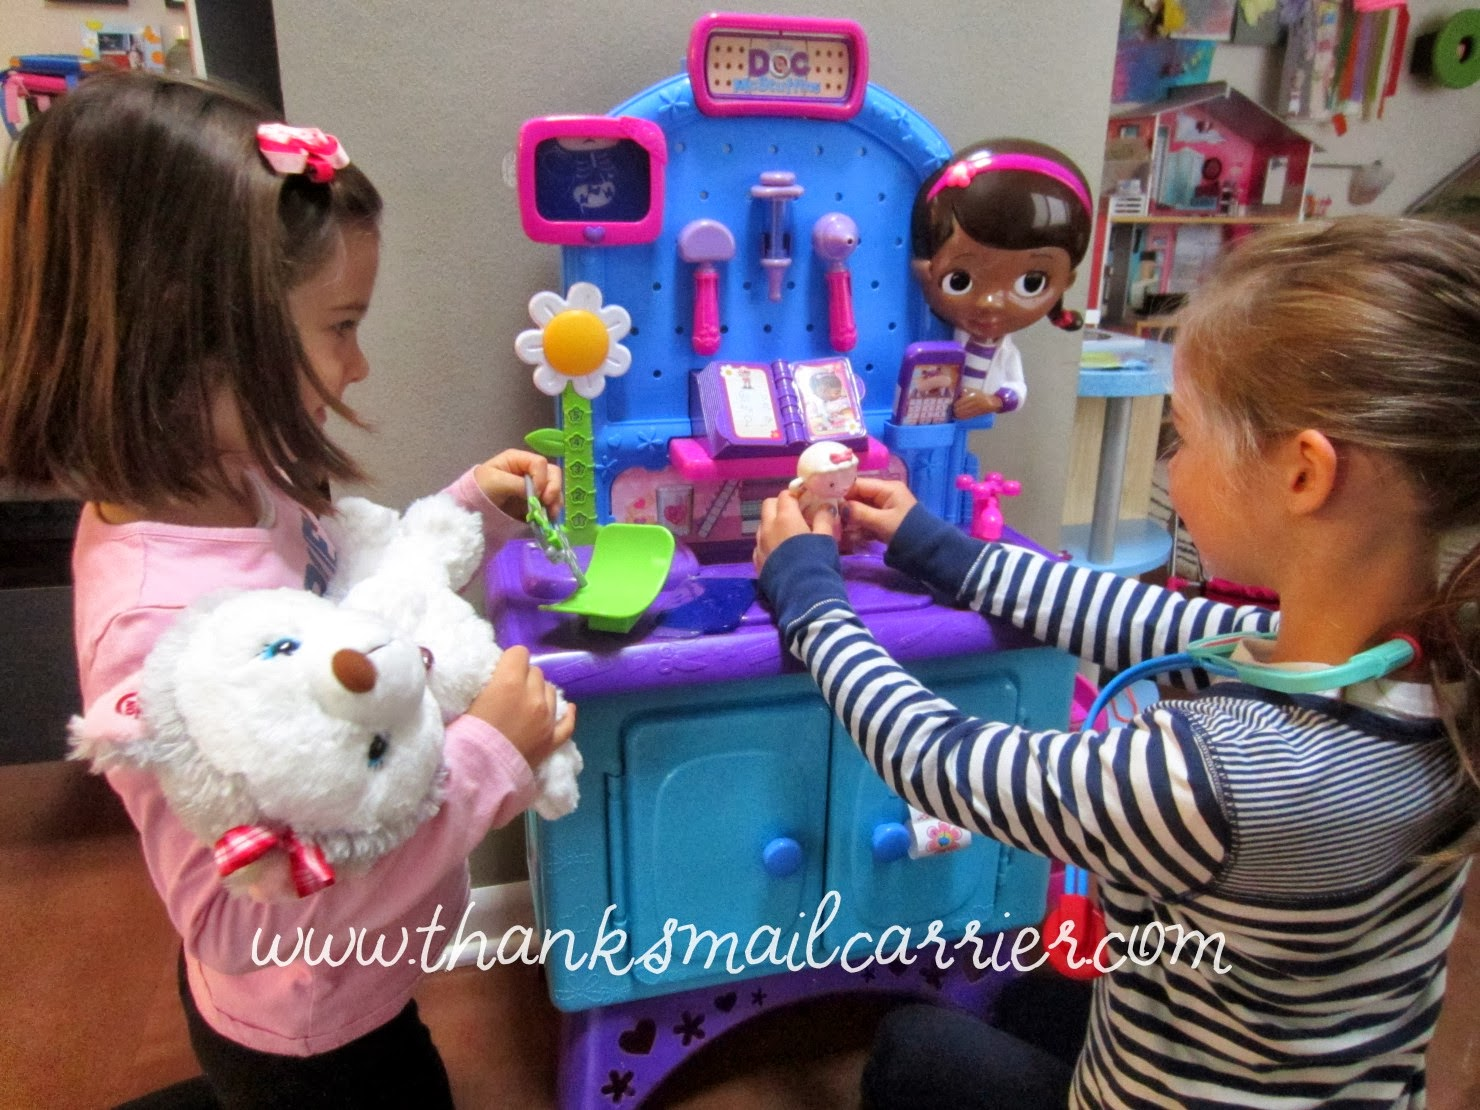 Disney Doc McStuffins Get Better Checkup Center by Just Play